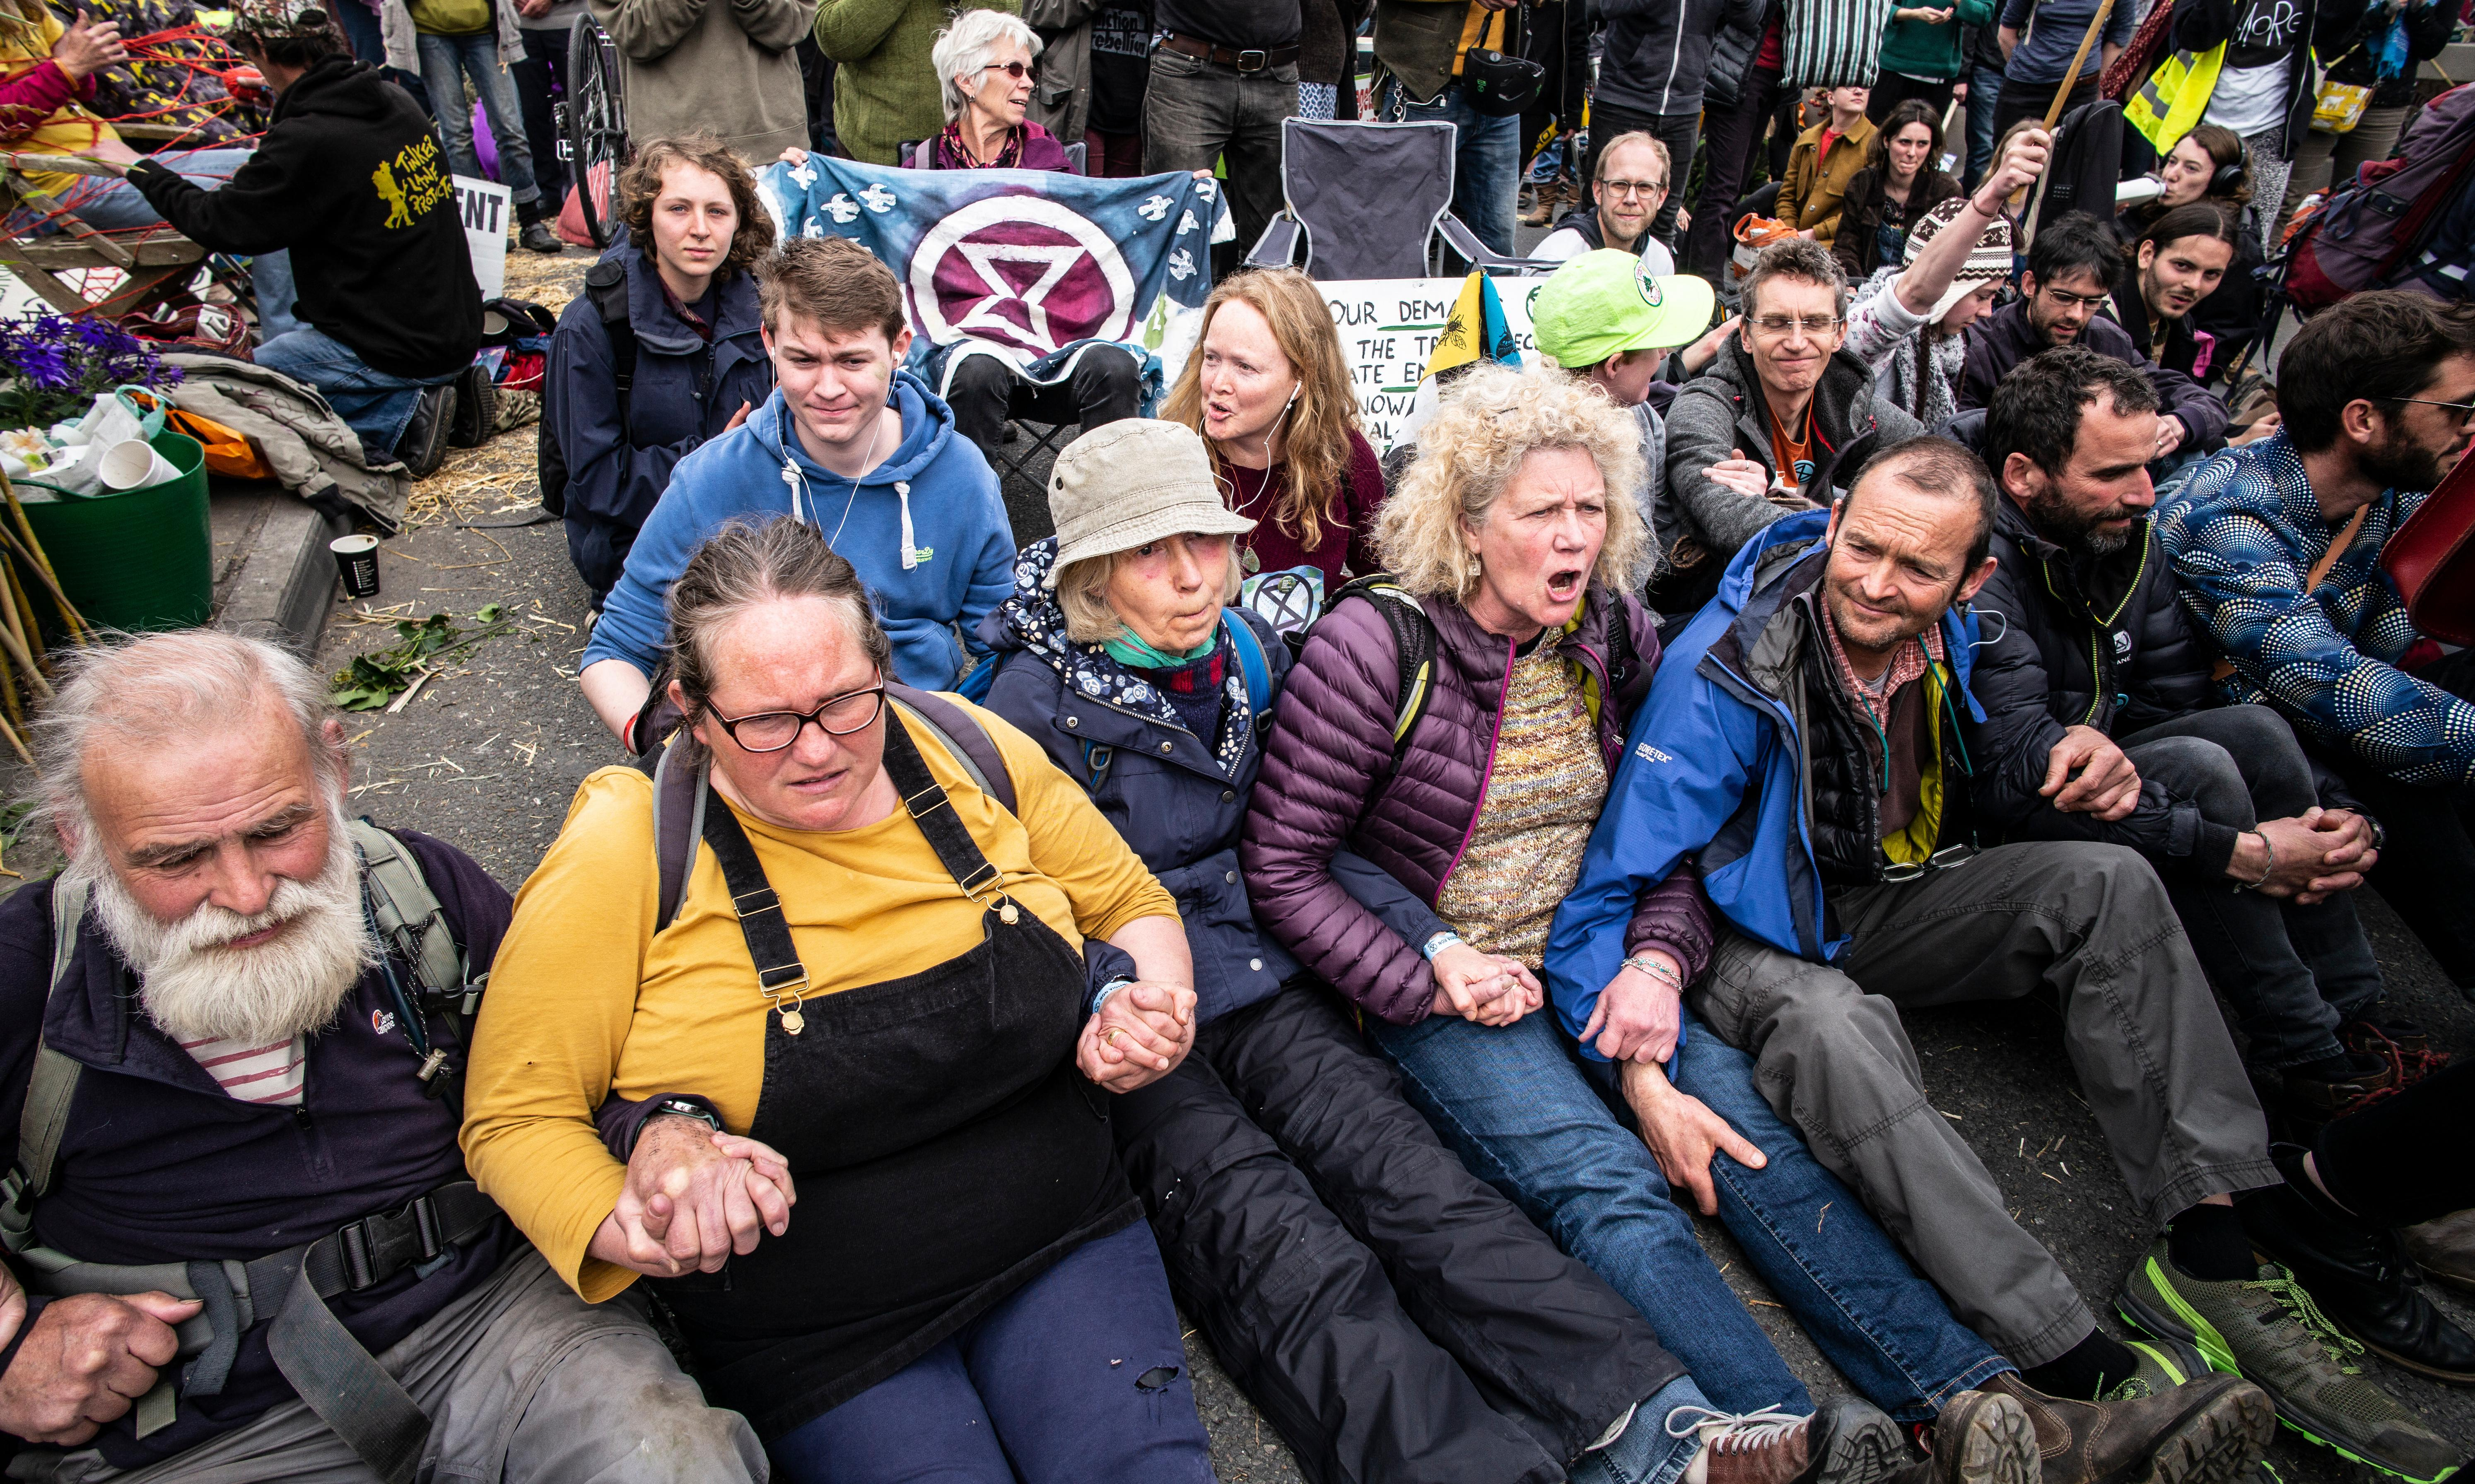 'I'm terrified': Extinction Rebellion activists on why they are protesting